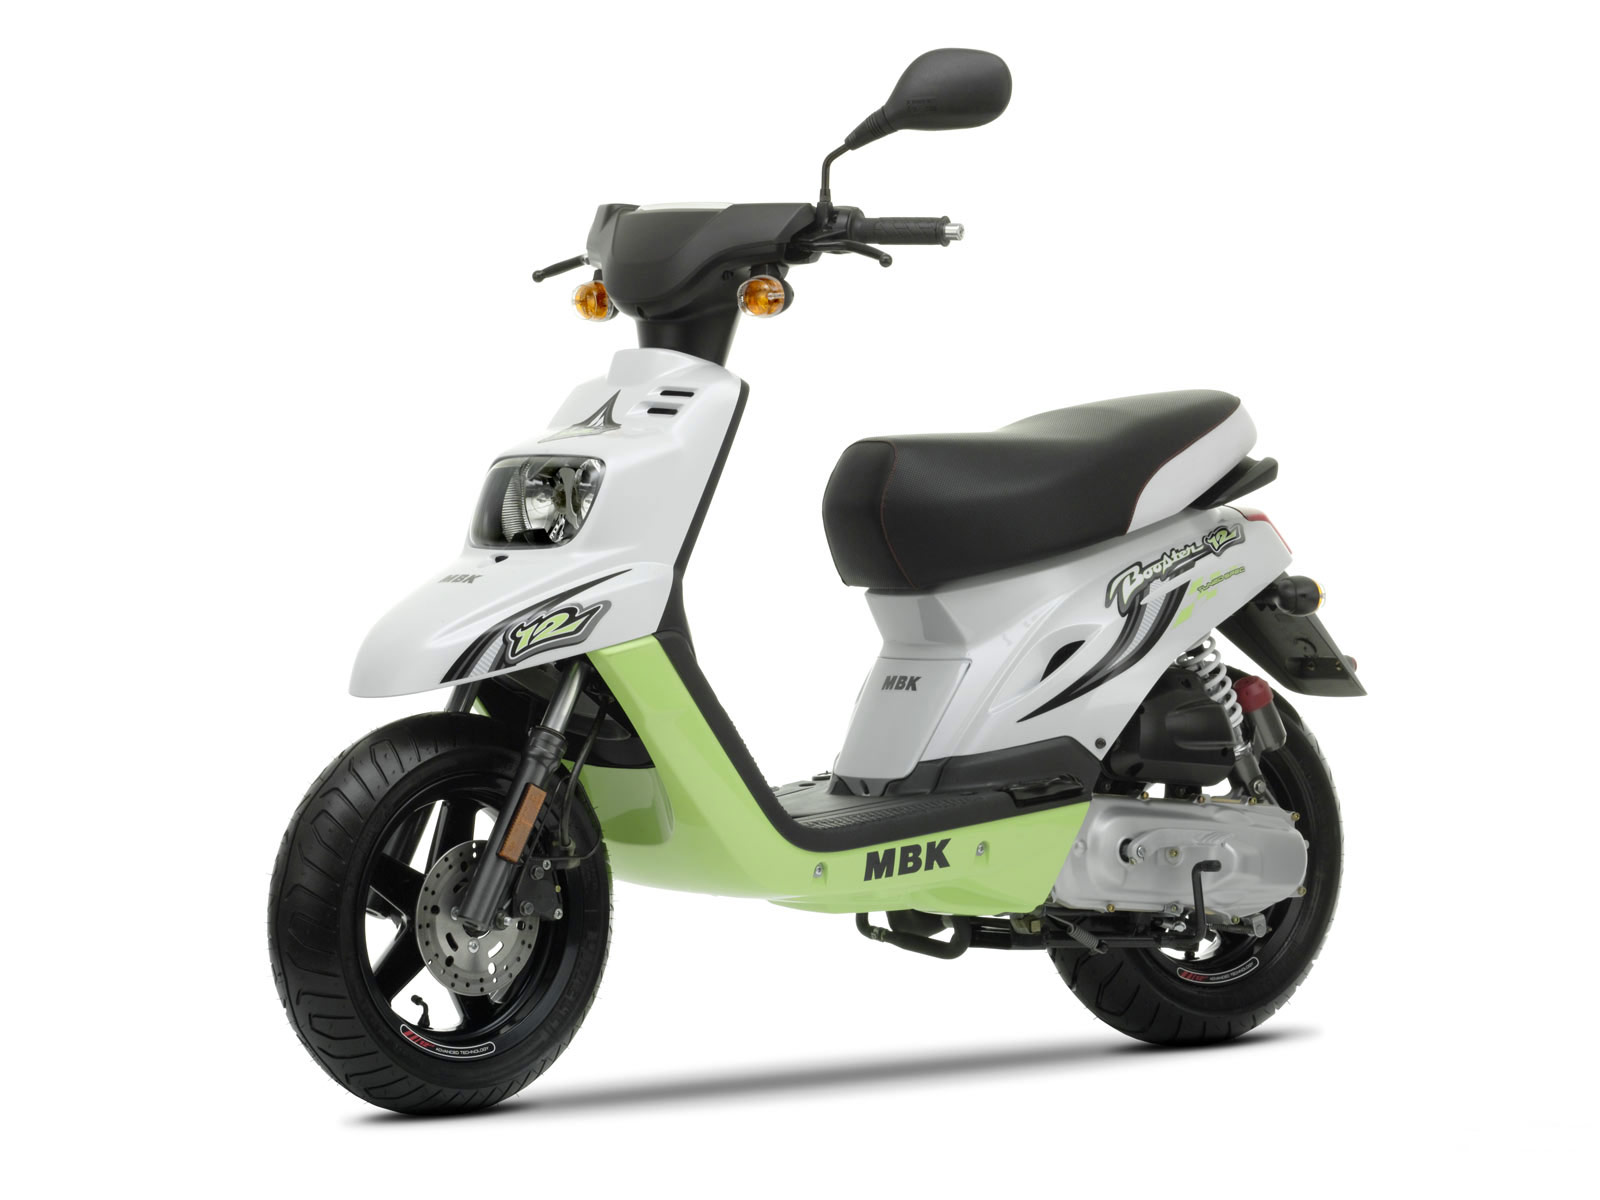 2009 Mbk Booster 12inch Scooter Pictures Insurance